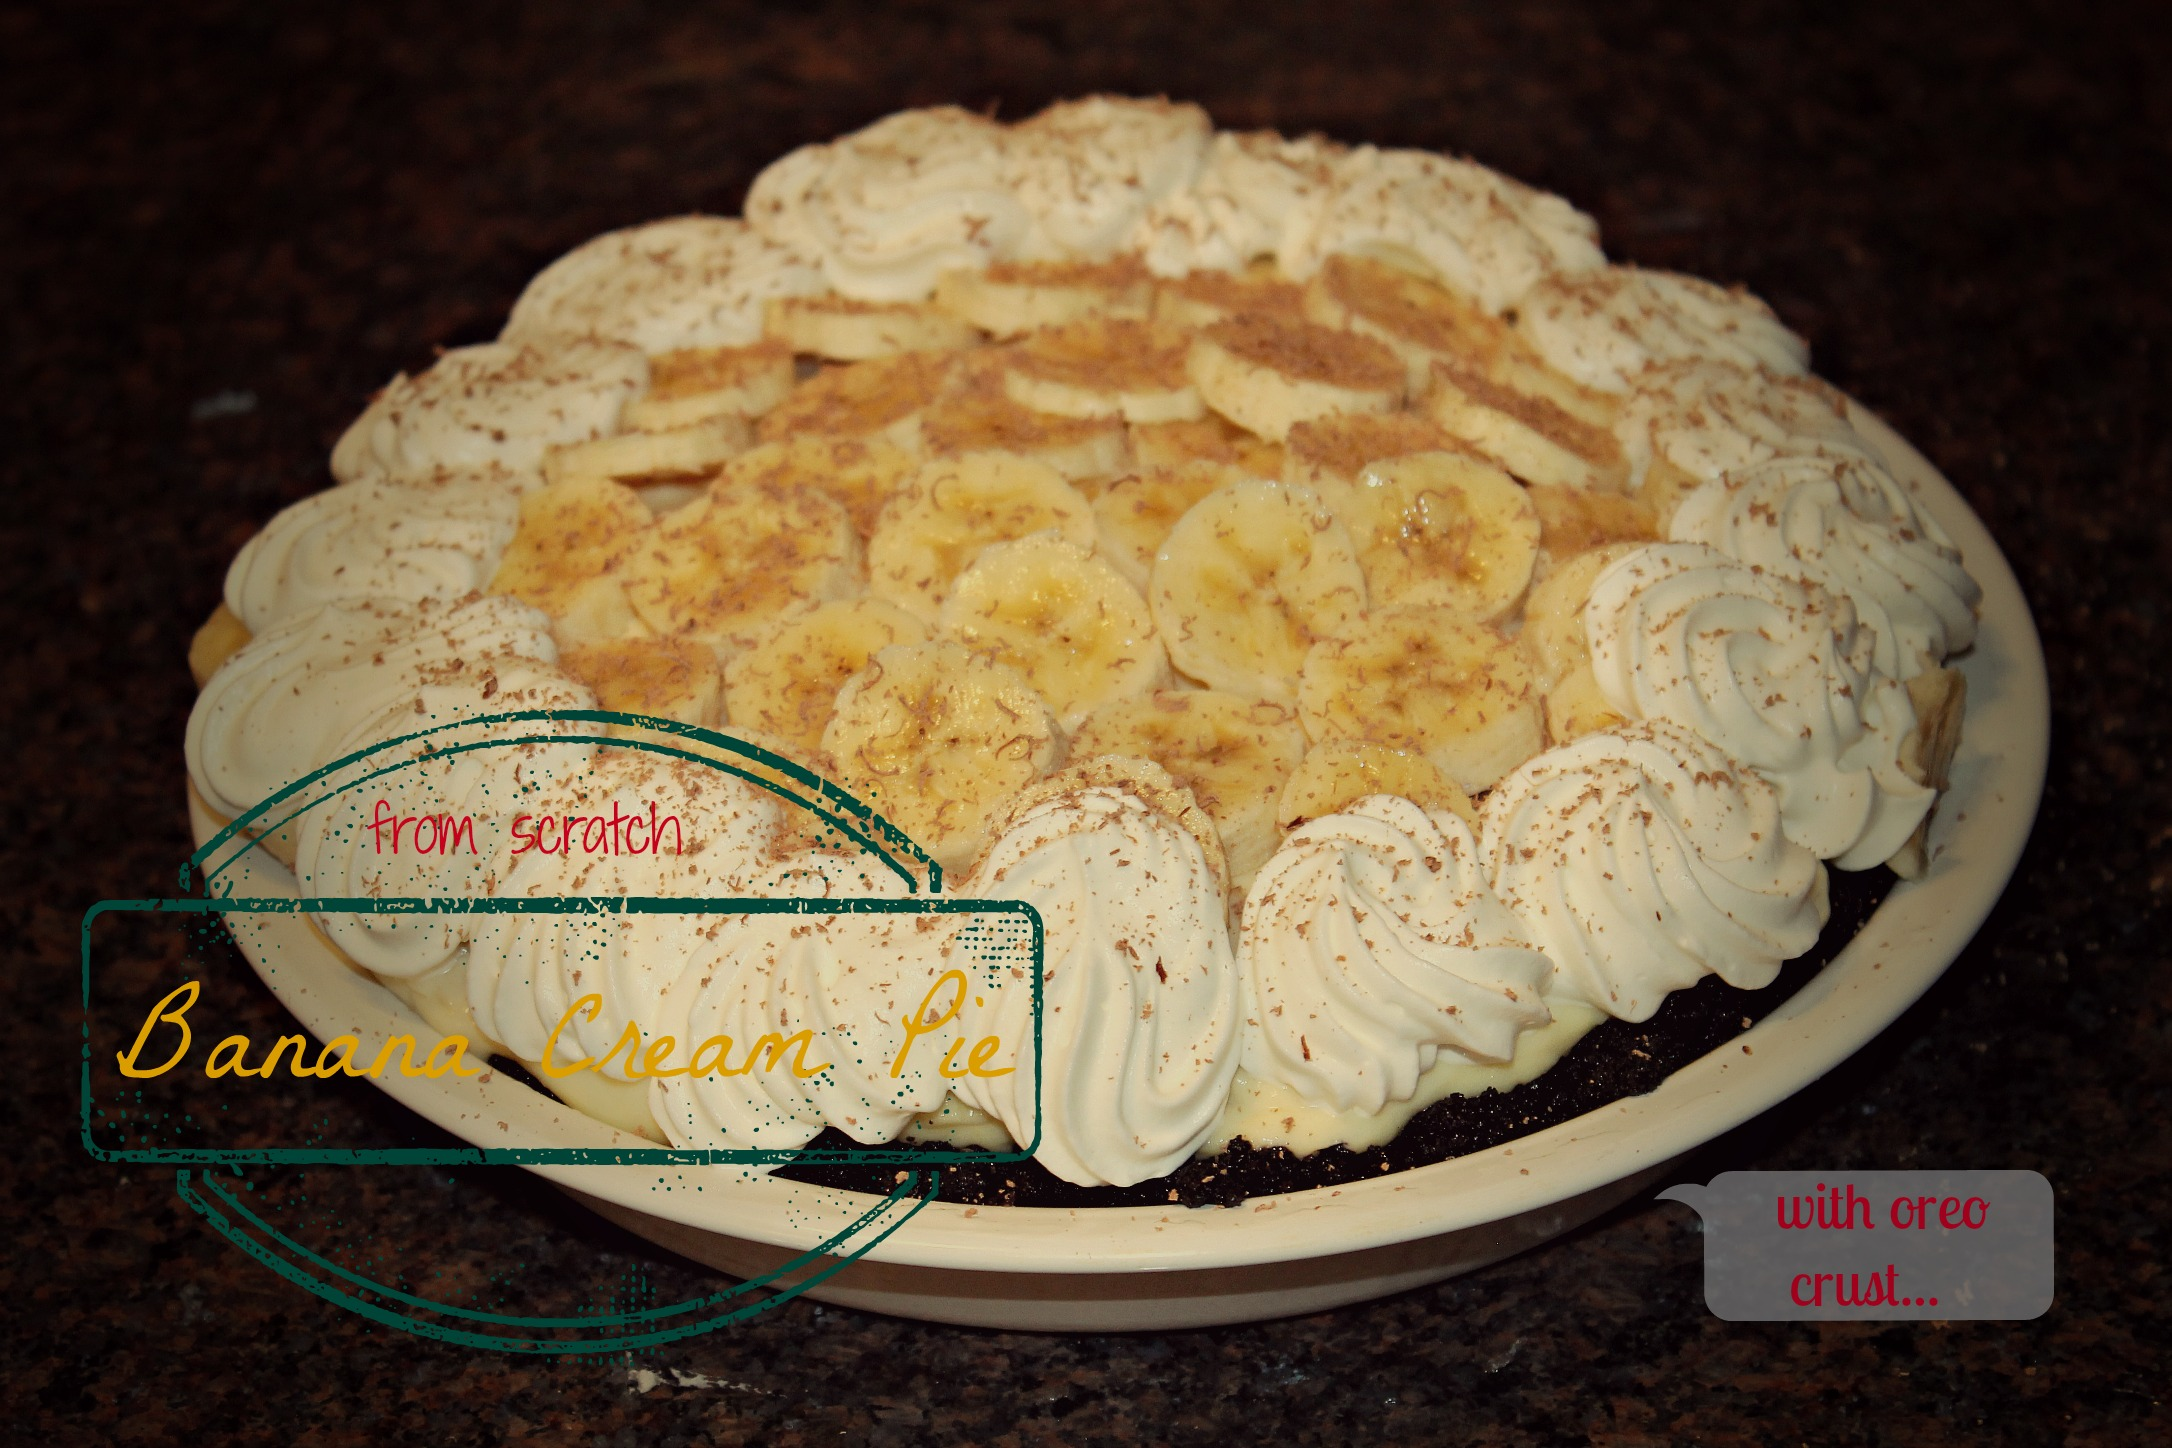 Banana Cream Pie: Eat It & Say Yum